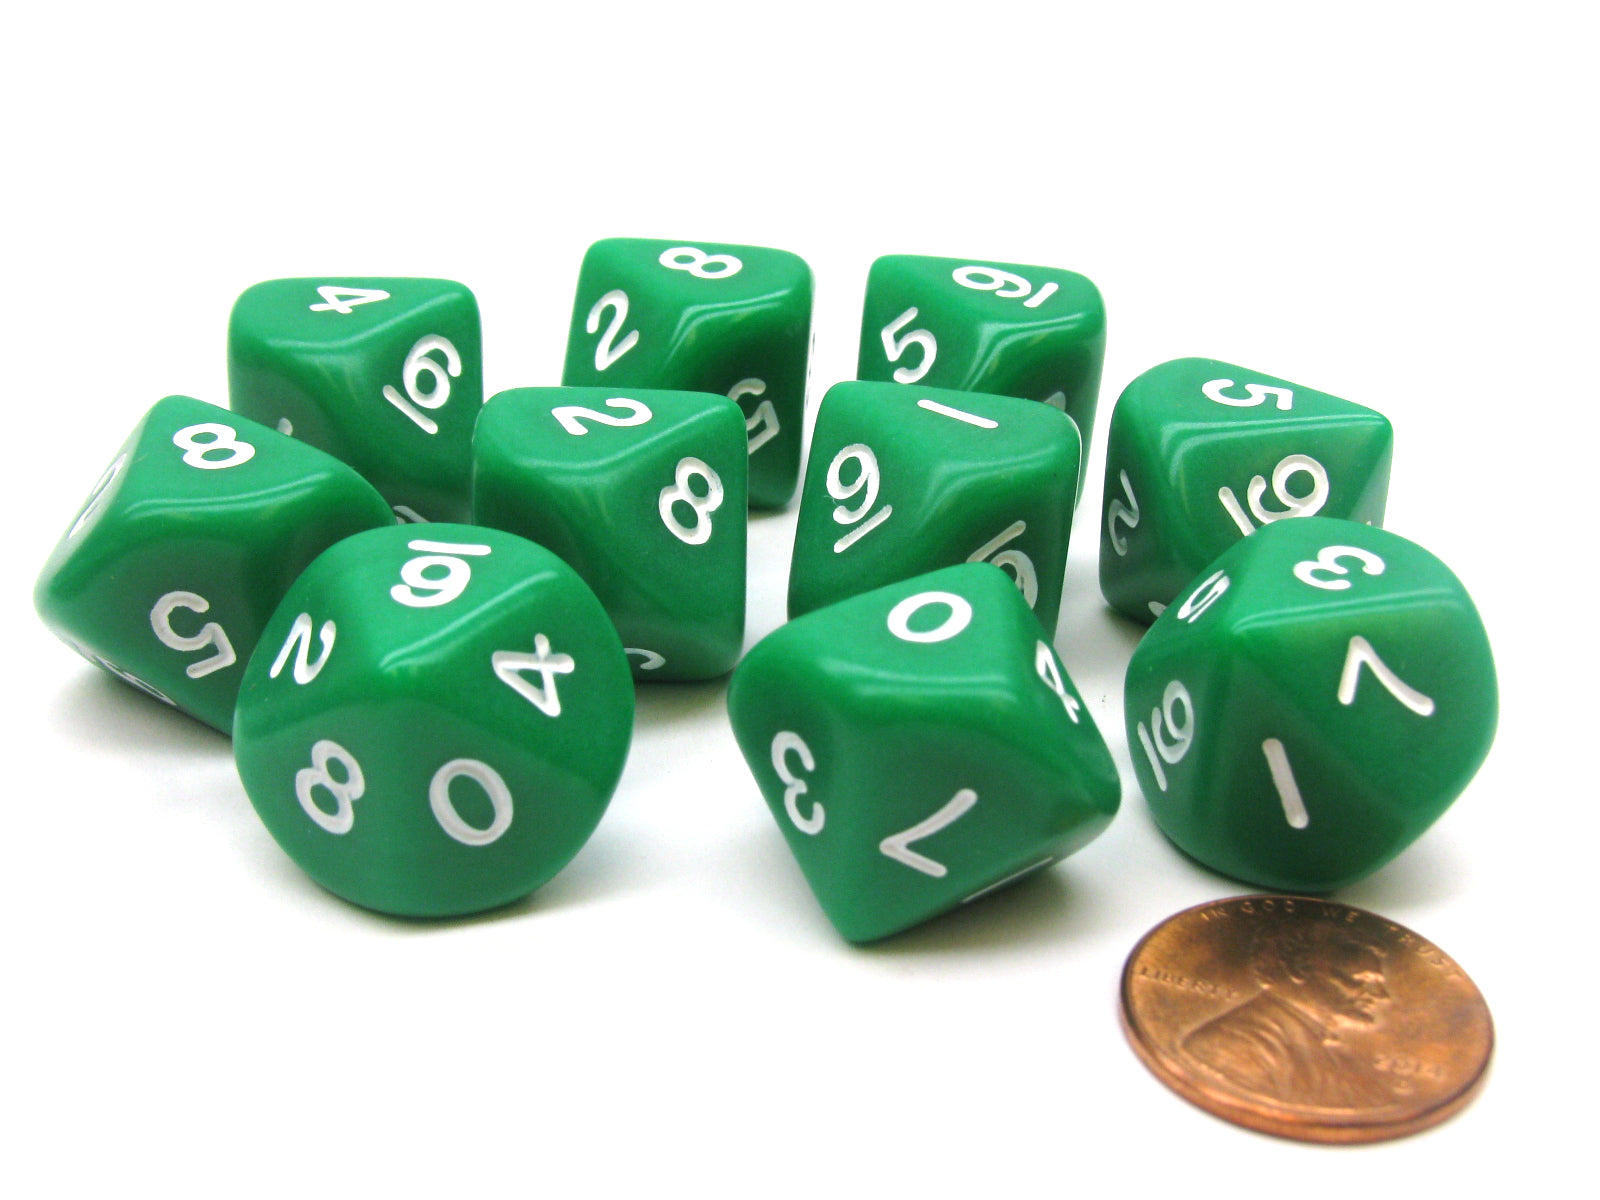 Set of 10 D10 10-Sided 16mm Opaque Dice - Green with White Numbers